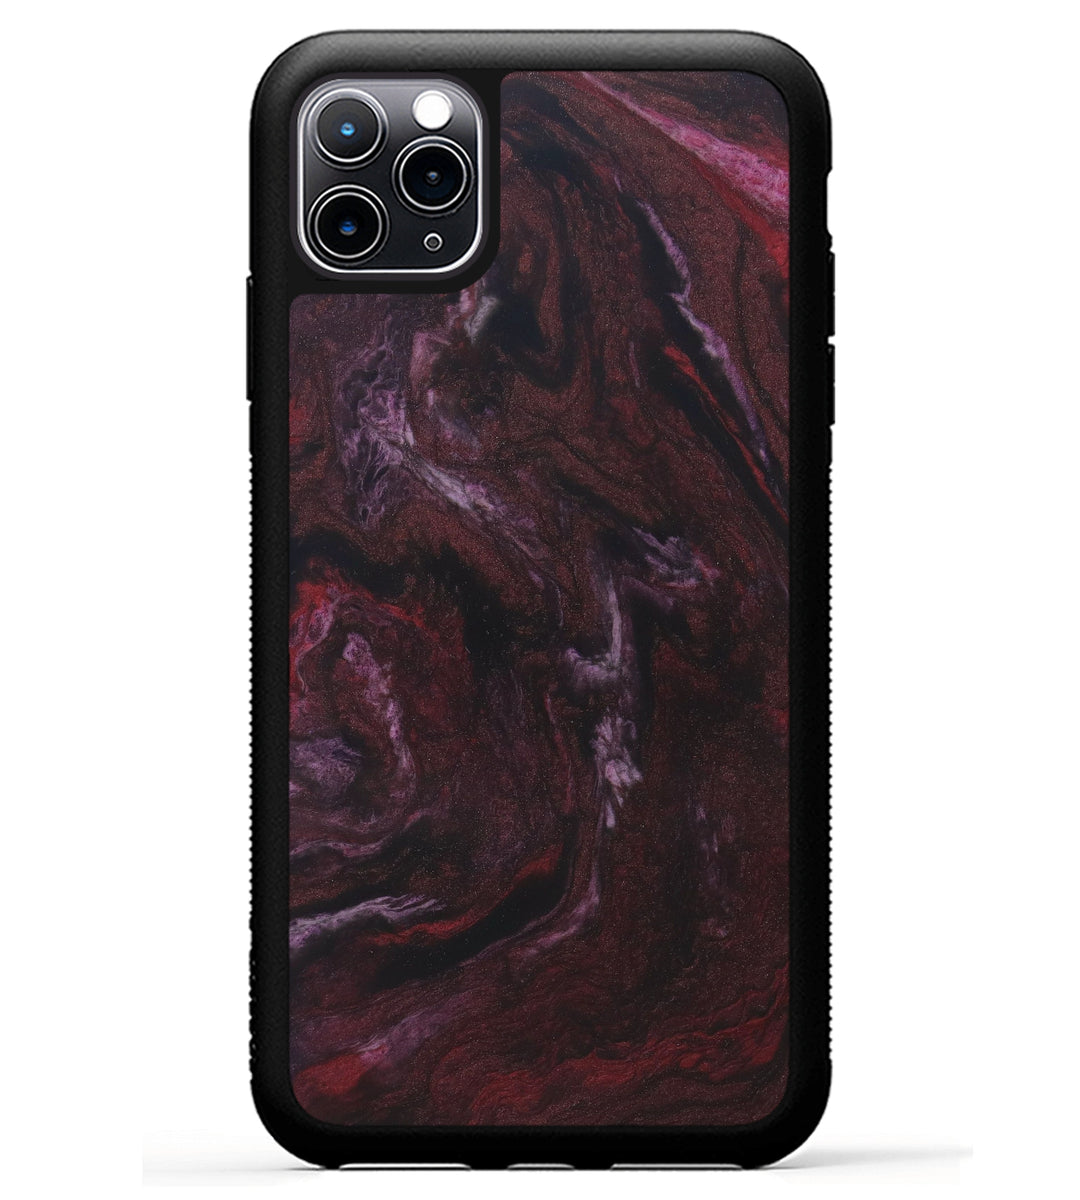 iPhone 11 Pro Max ResinArt Phone Case - Bessie (Dark Red, 347672)